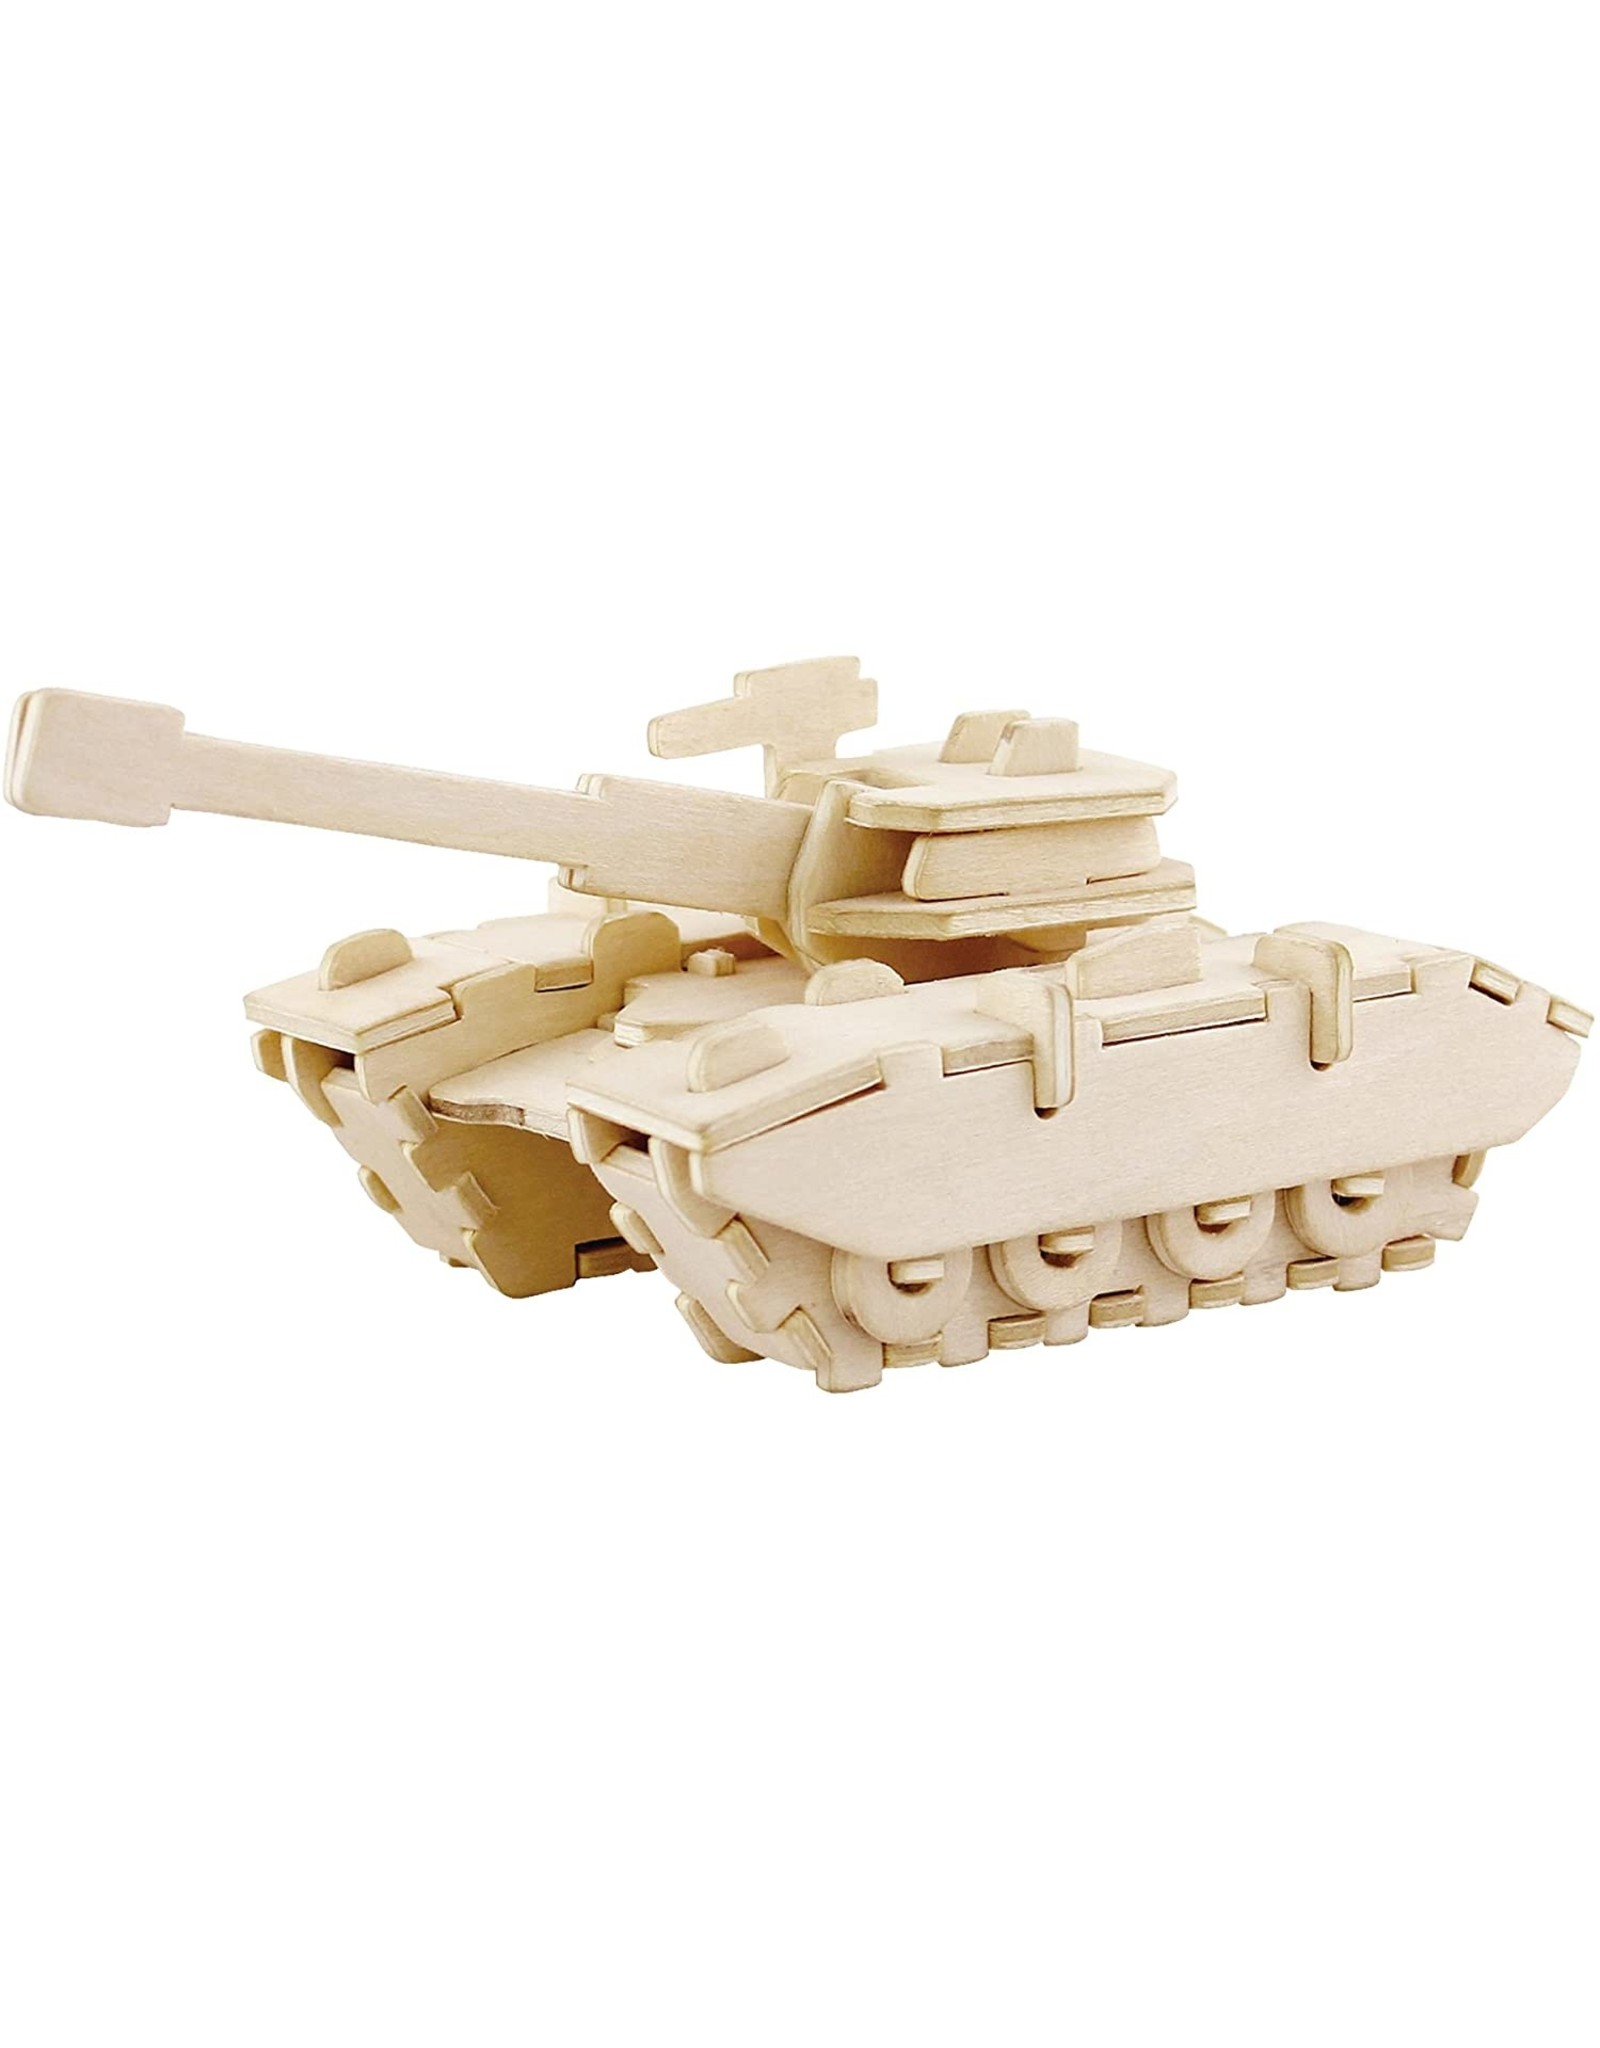 Hands Craft 3D Wooden Puzzle - Tank